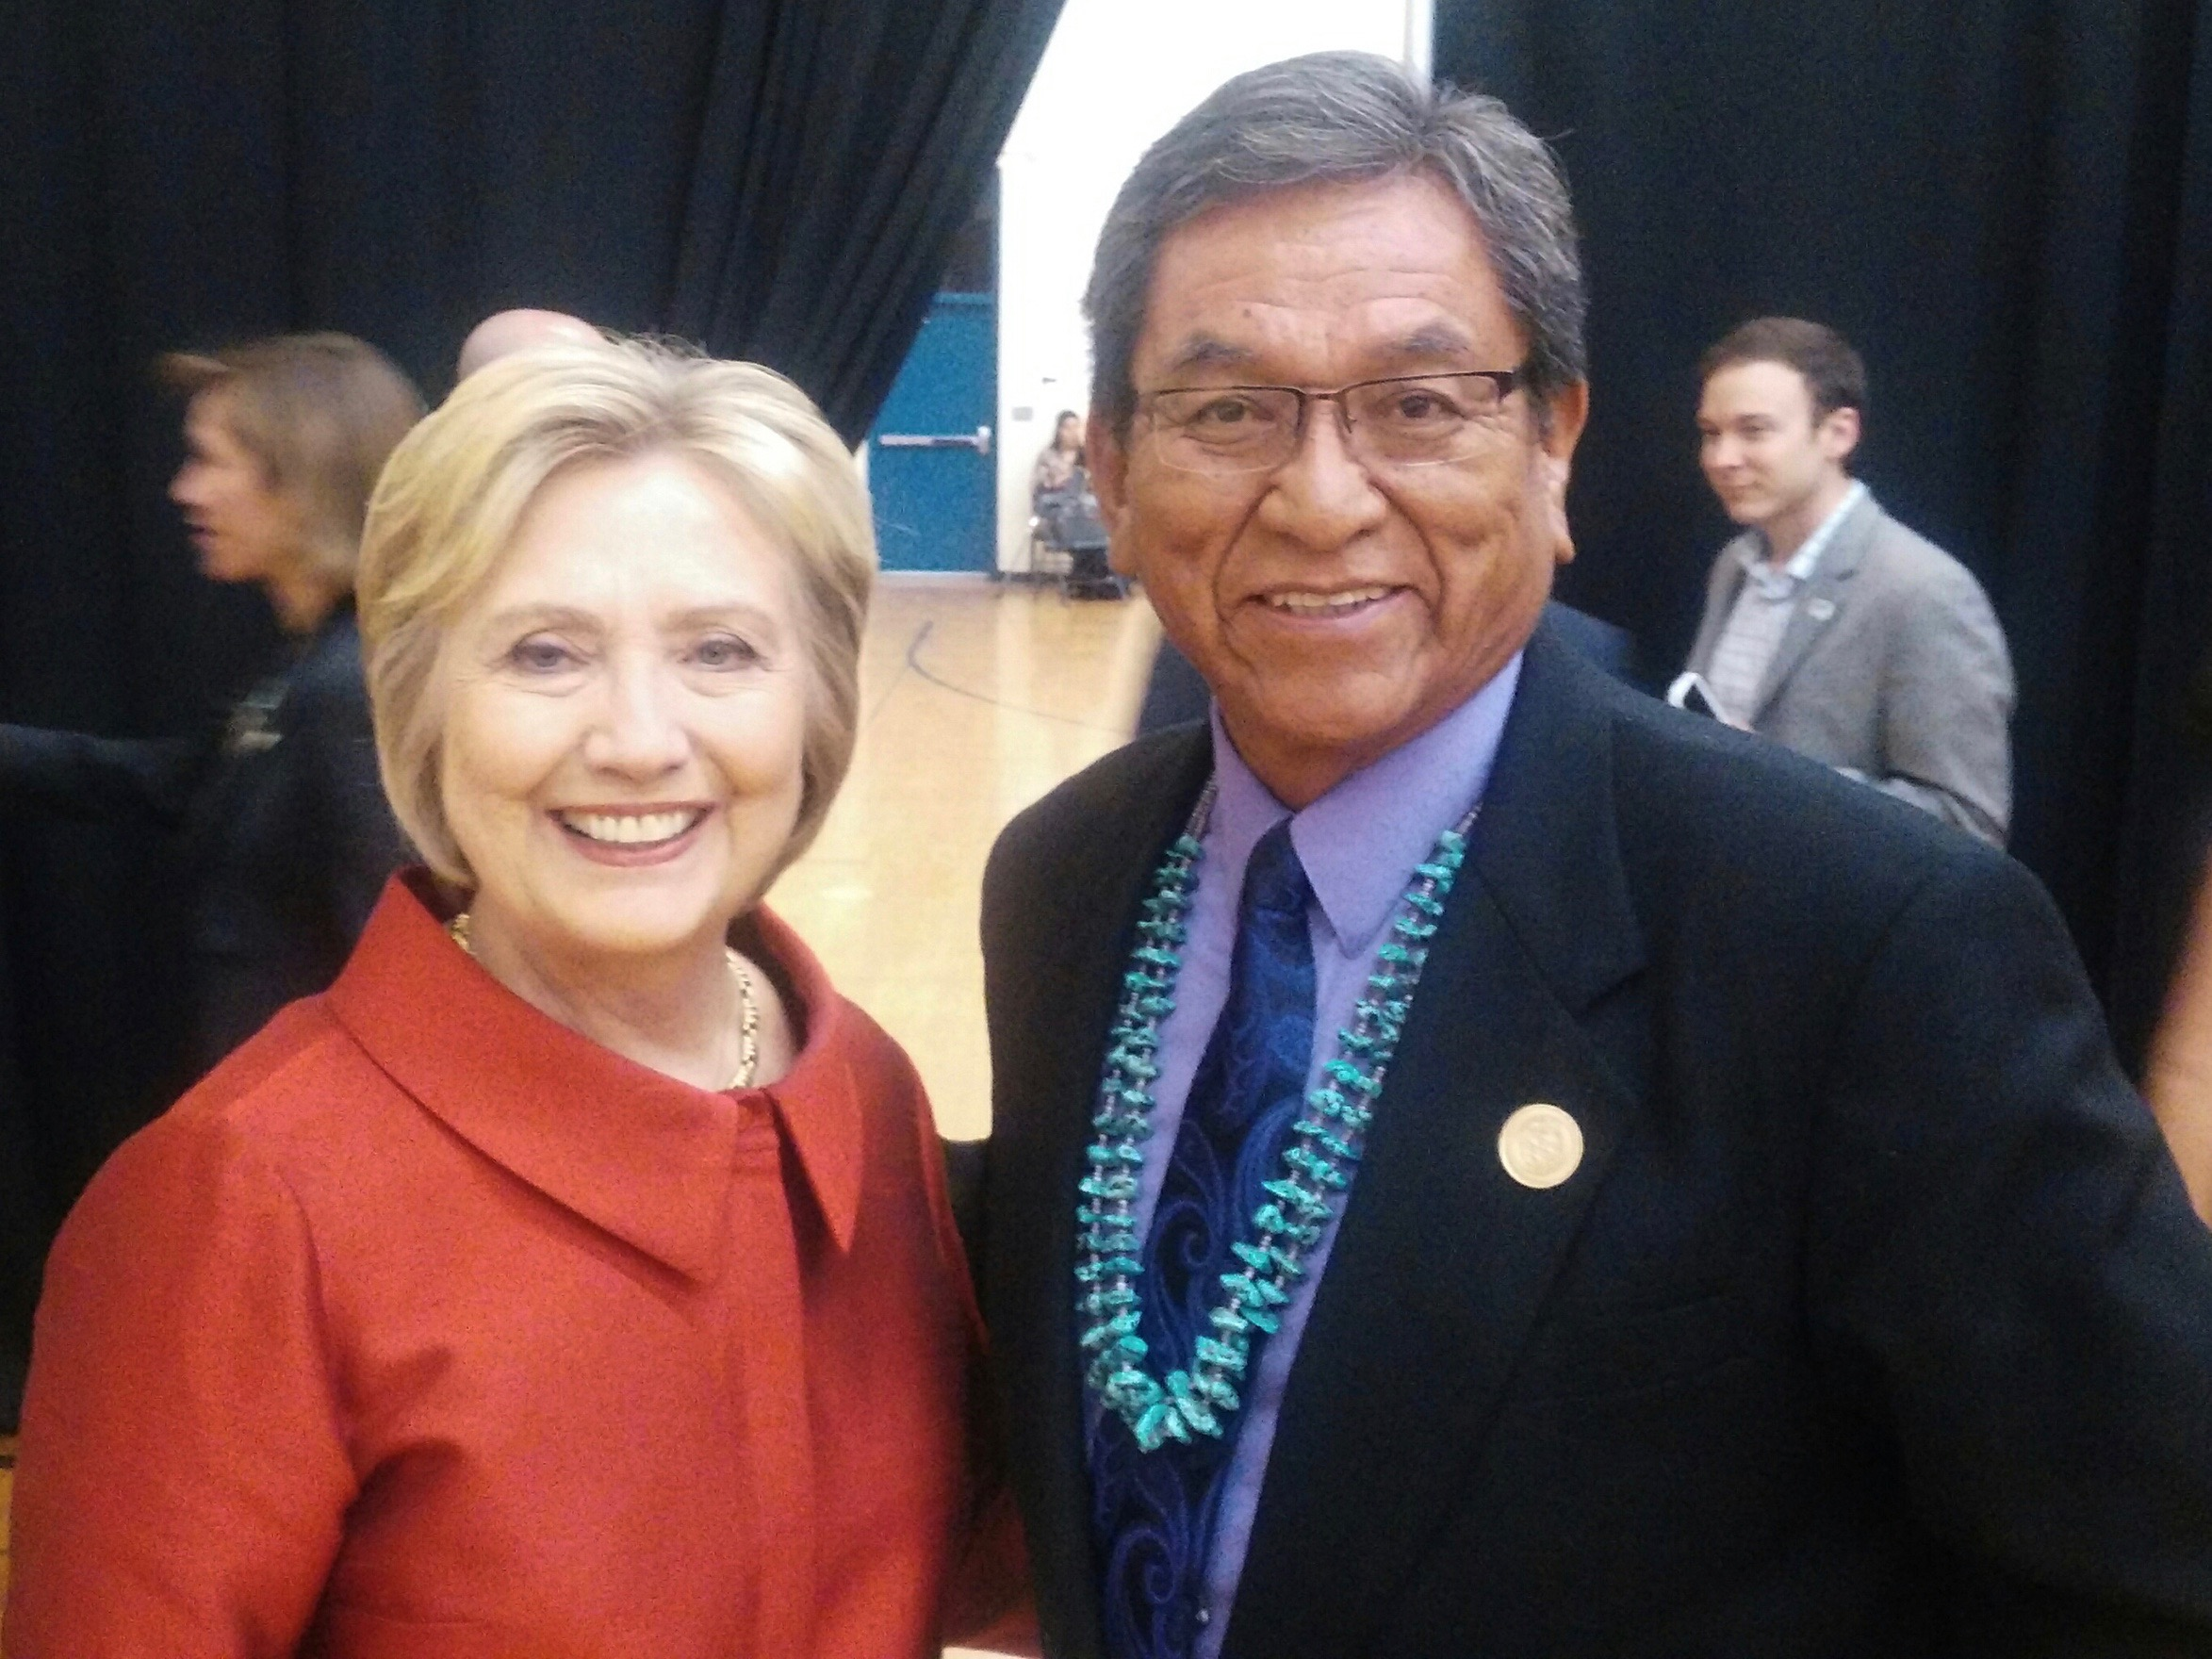 Navajo Nation President Russell Begaye endorses Hillary Clinton